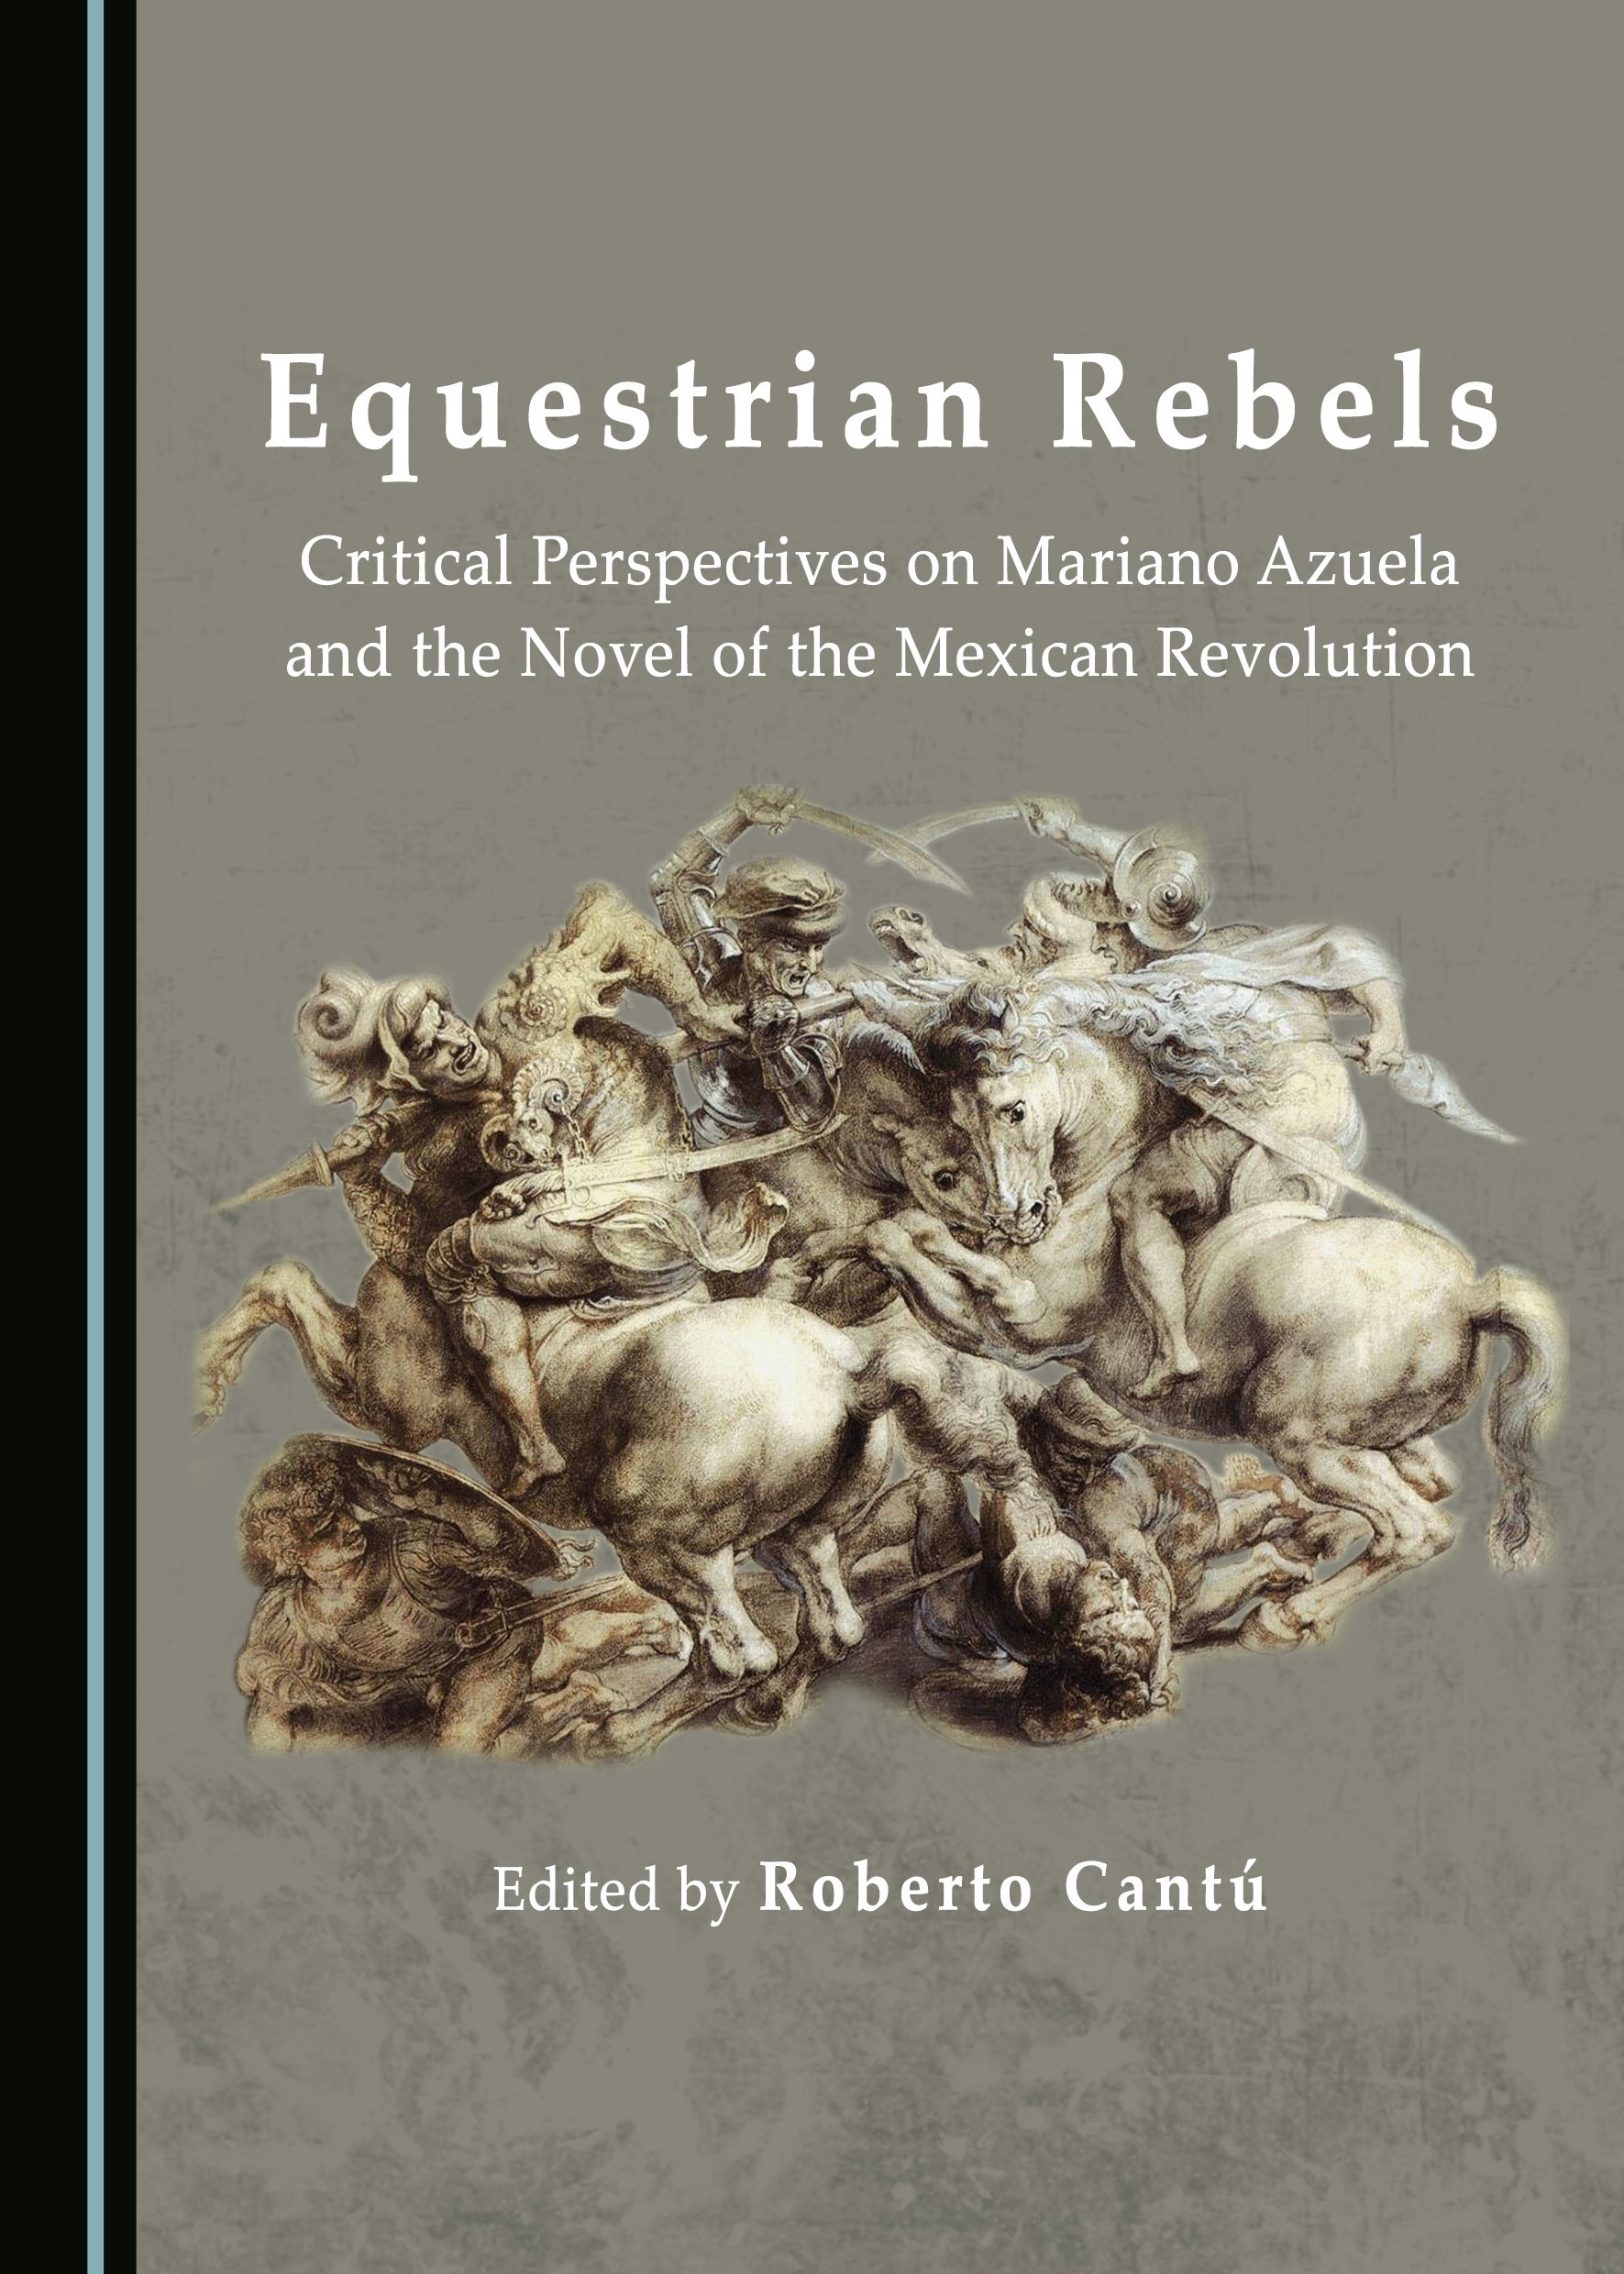 Equestrian Rebels: Critical Perspectives on Mariano Azuela and the Novel of the Mexican Revolution